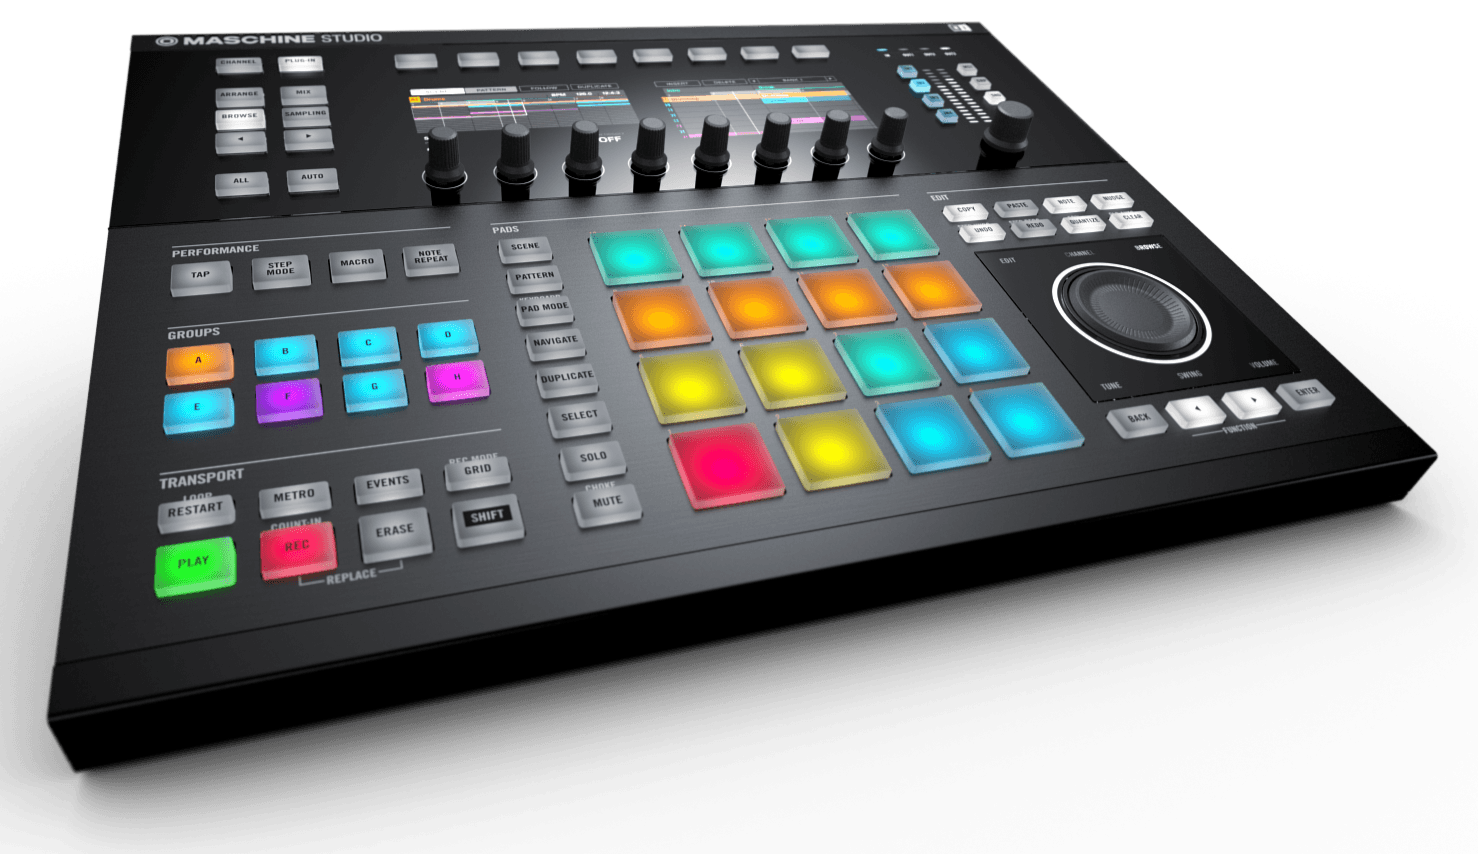 Announced that maschine studio and maschine 2.0 are now available